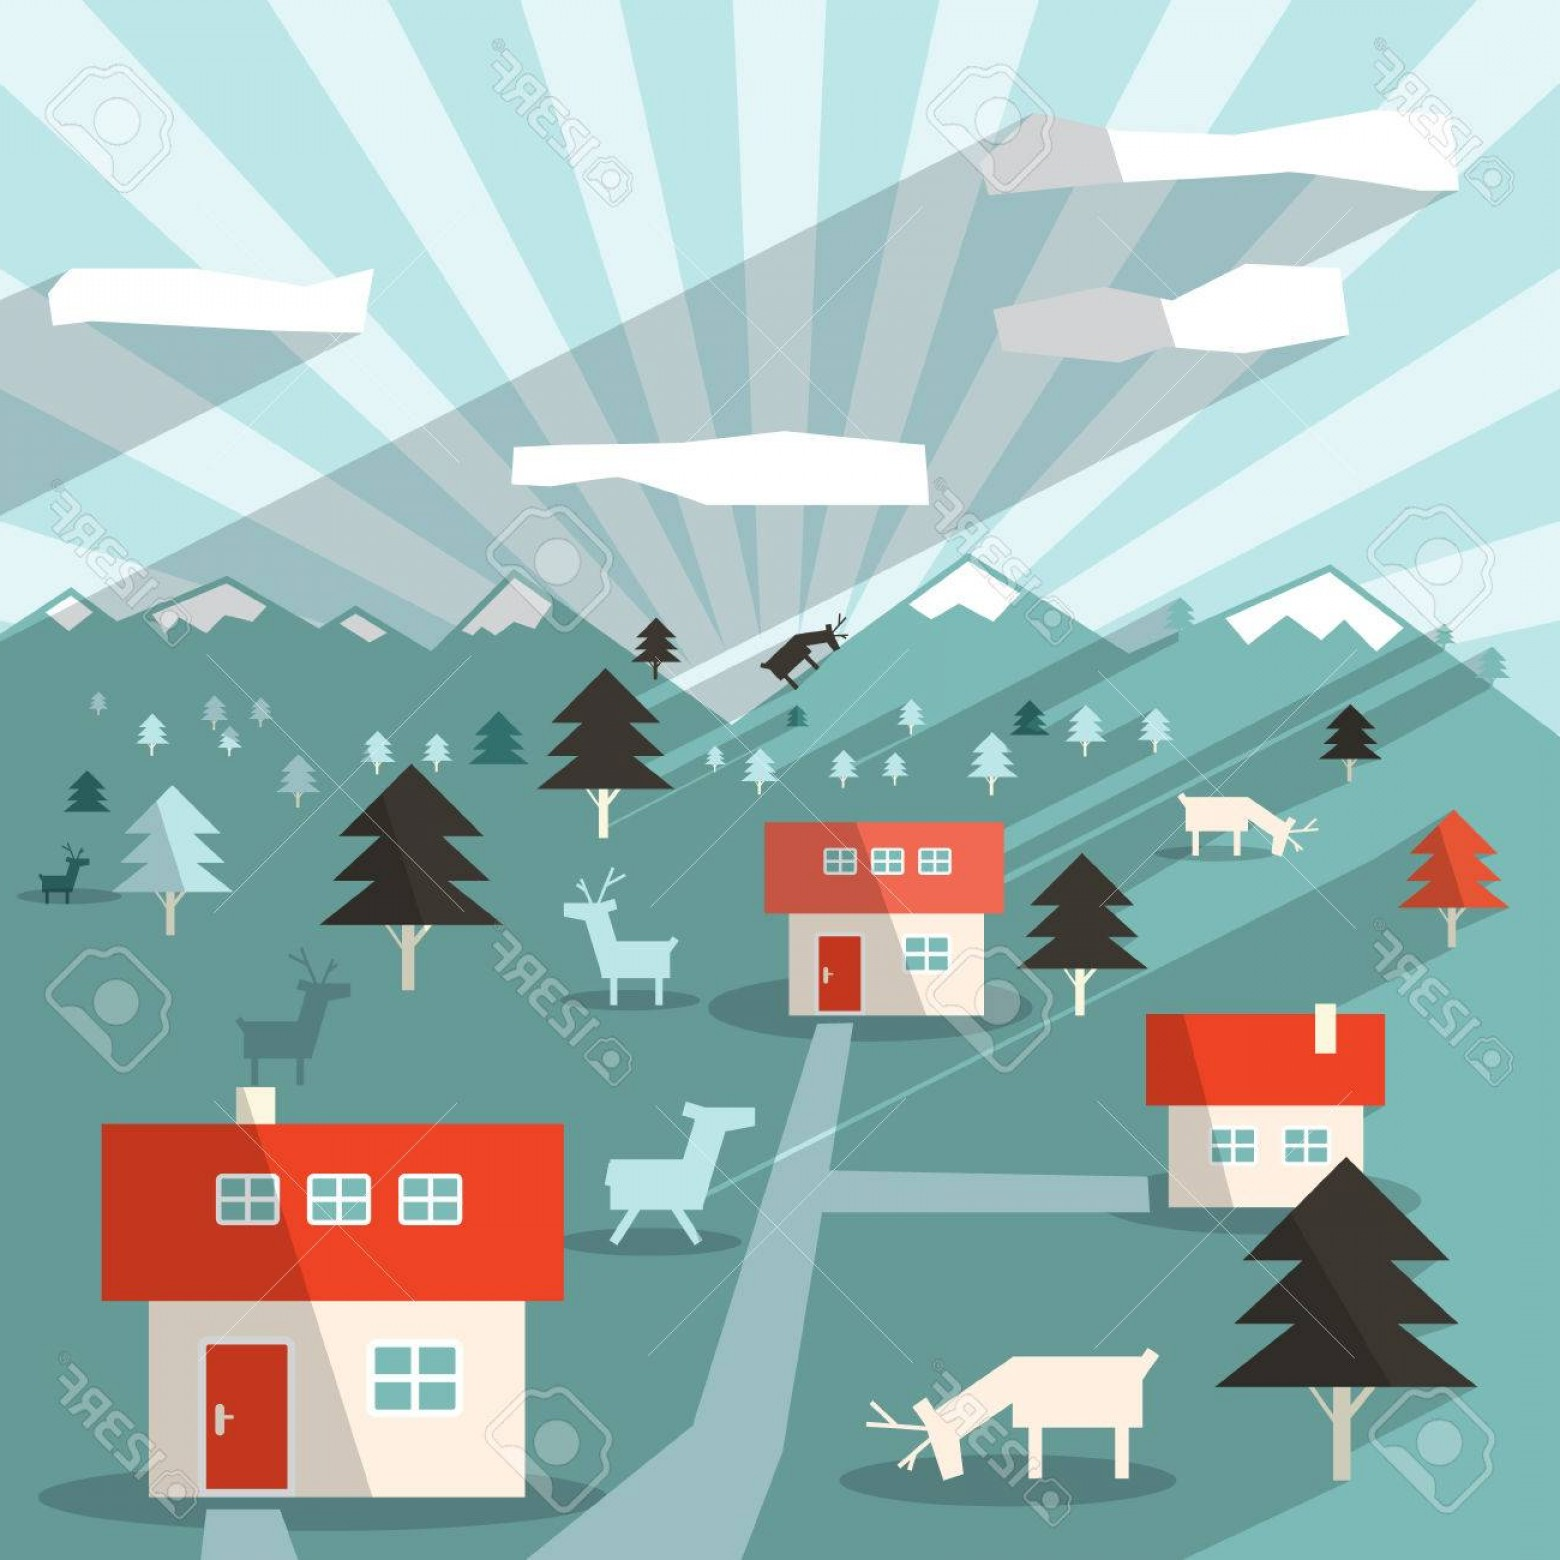 Flat Vector Art And Abstract Forest: Photostock Vector Abstract Vector Flat Design Long Shadow Landscape Illustration With Houses Deers Mountains And Fores